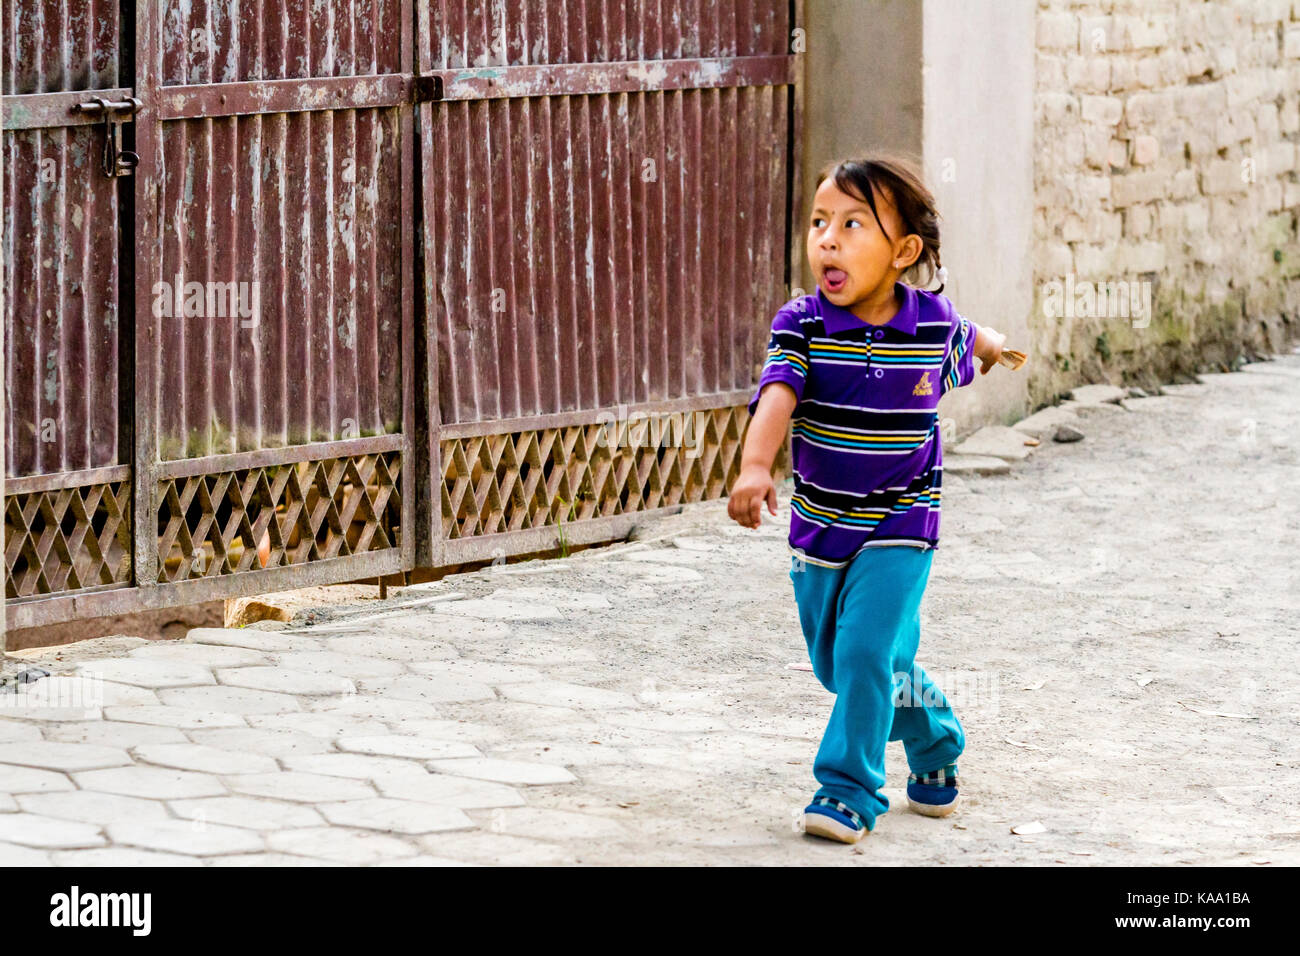 Nepalese child - Stock Image